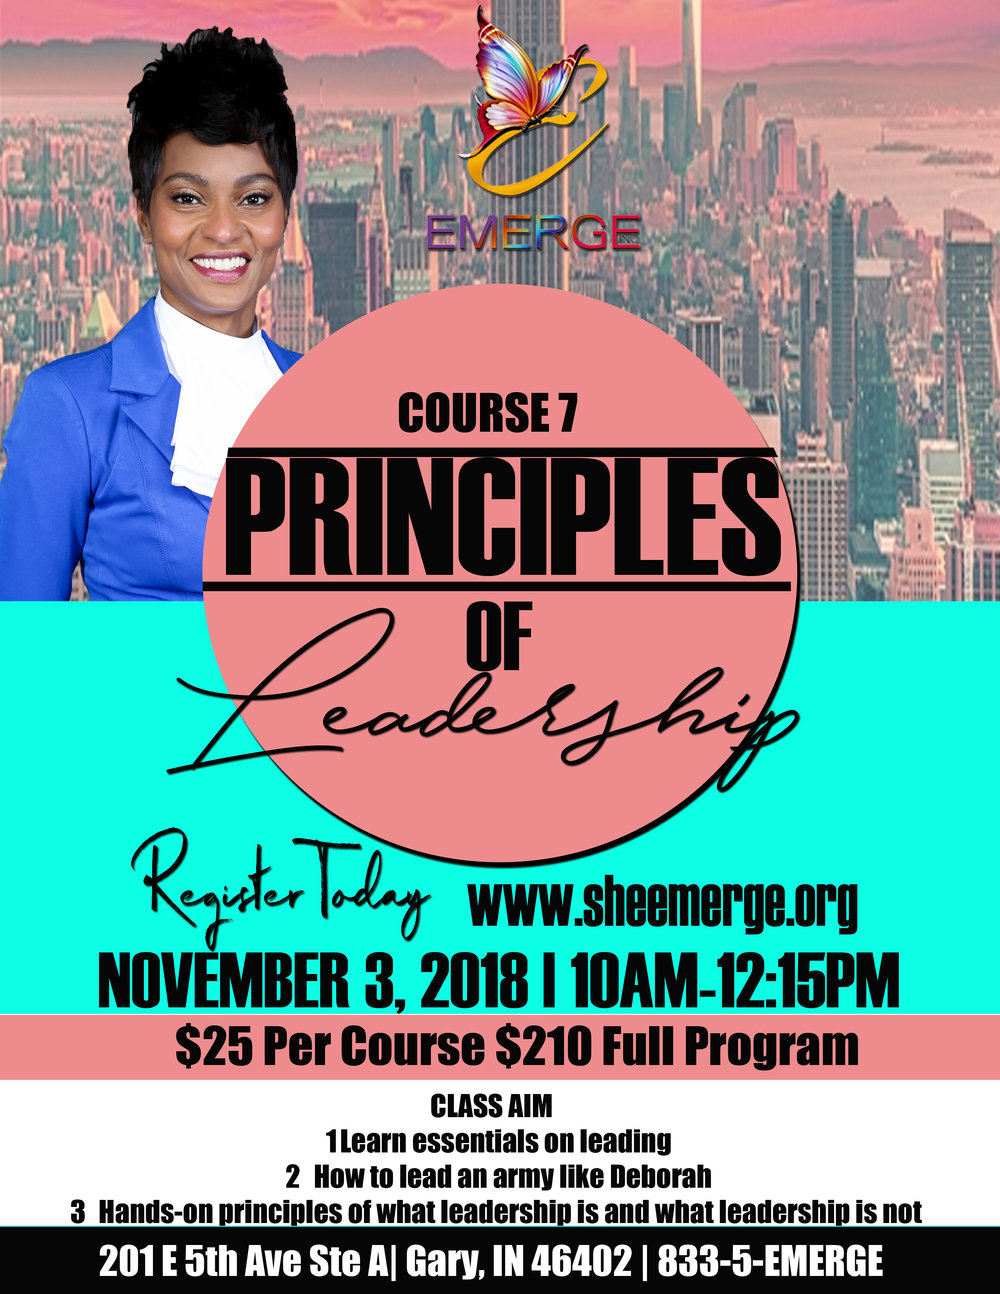 Course 7: Principles of Leadership - Session Start Date: November 3, 2018Course Description: Preparation and DisciplinePresenter: Pastor LashawnTime: 10:00am-12:15pmLocation: 201 E. 5th Ave Ste D